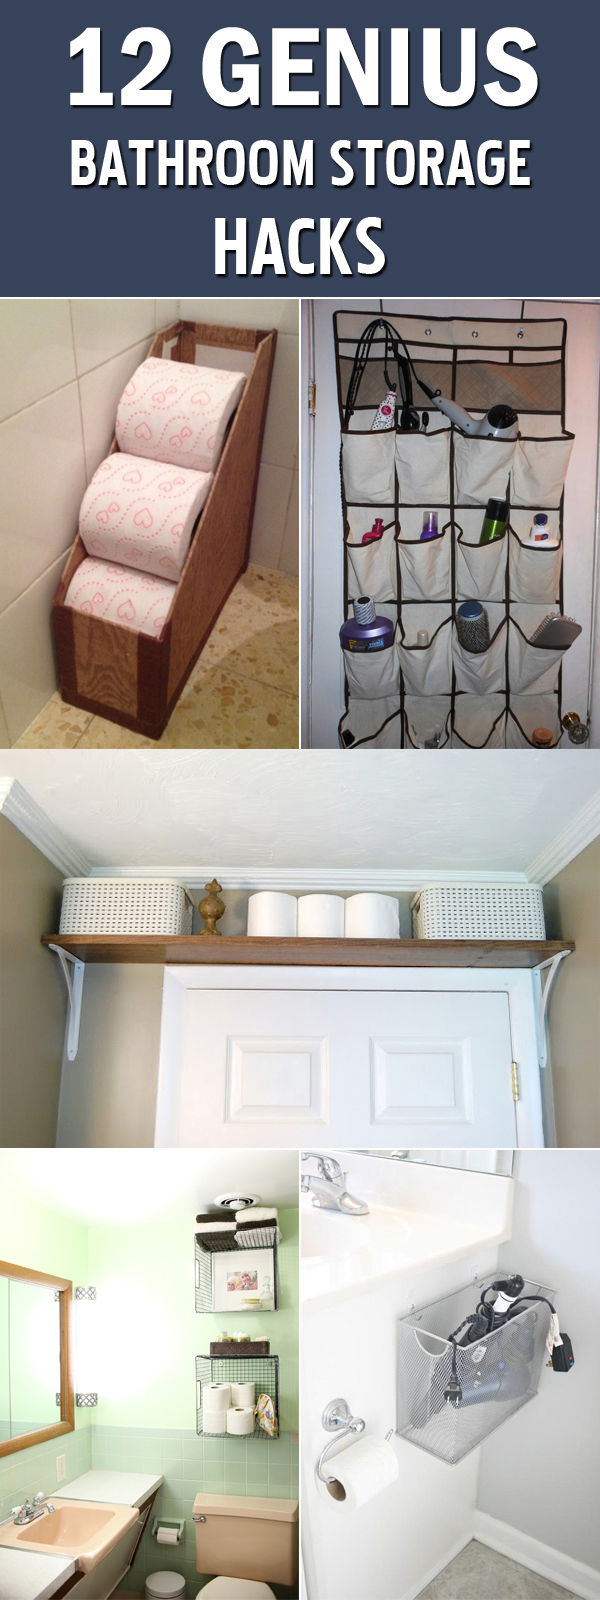 If you've spent any time on Pinterest in the last few years, you'll notice that pallet everything is the trendiest home storage hack right tommudselb.tks can easily be .